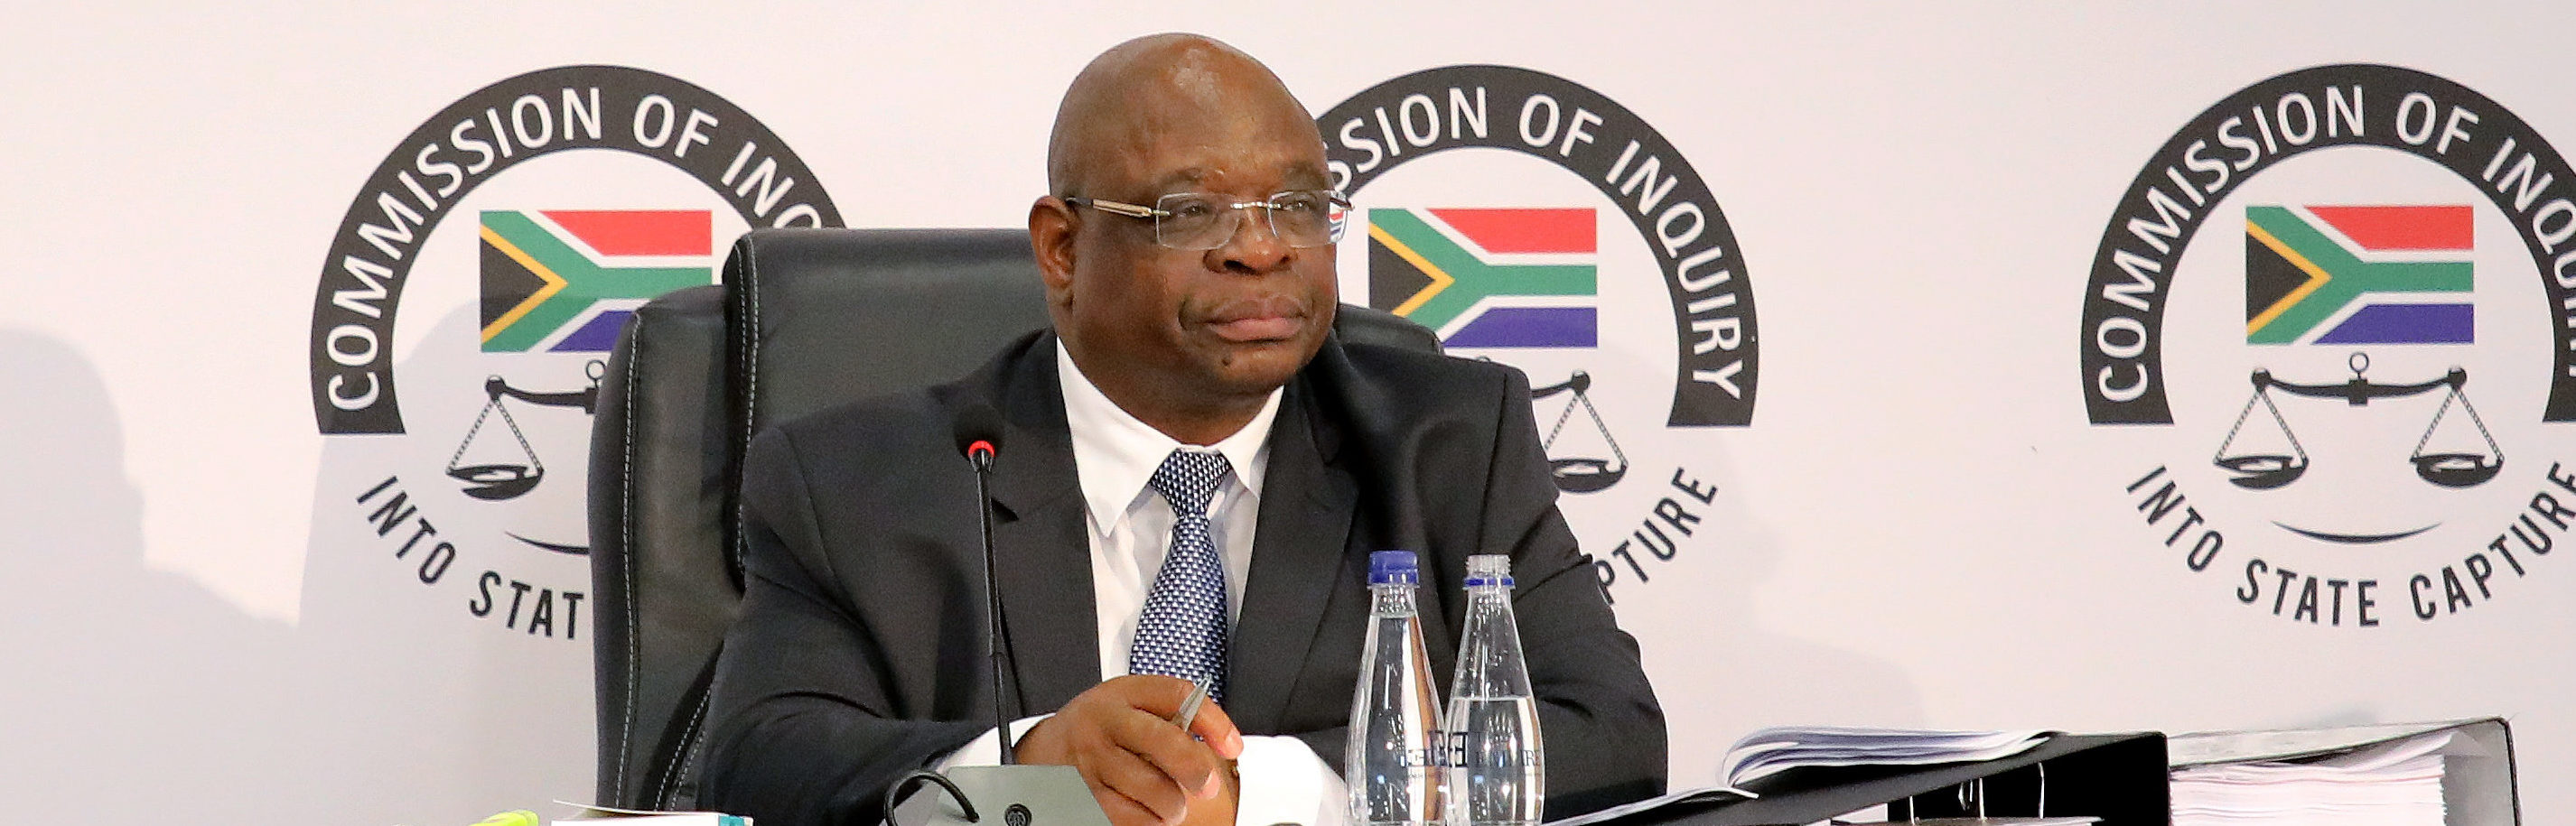 Role of Ace Magashule's ex-secretary comes under scrutiny at inquiry